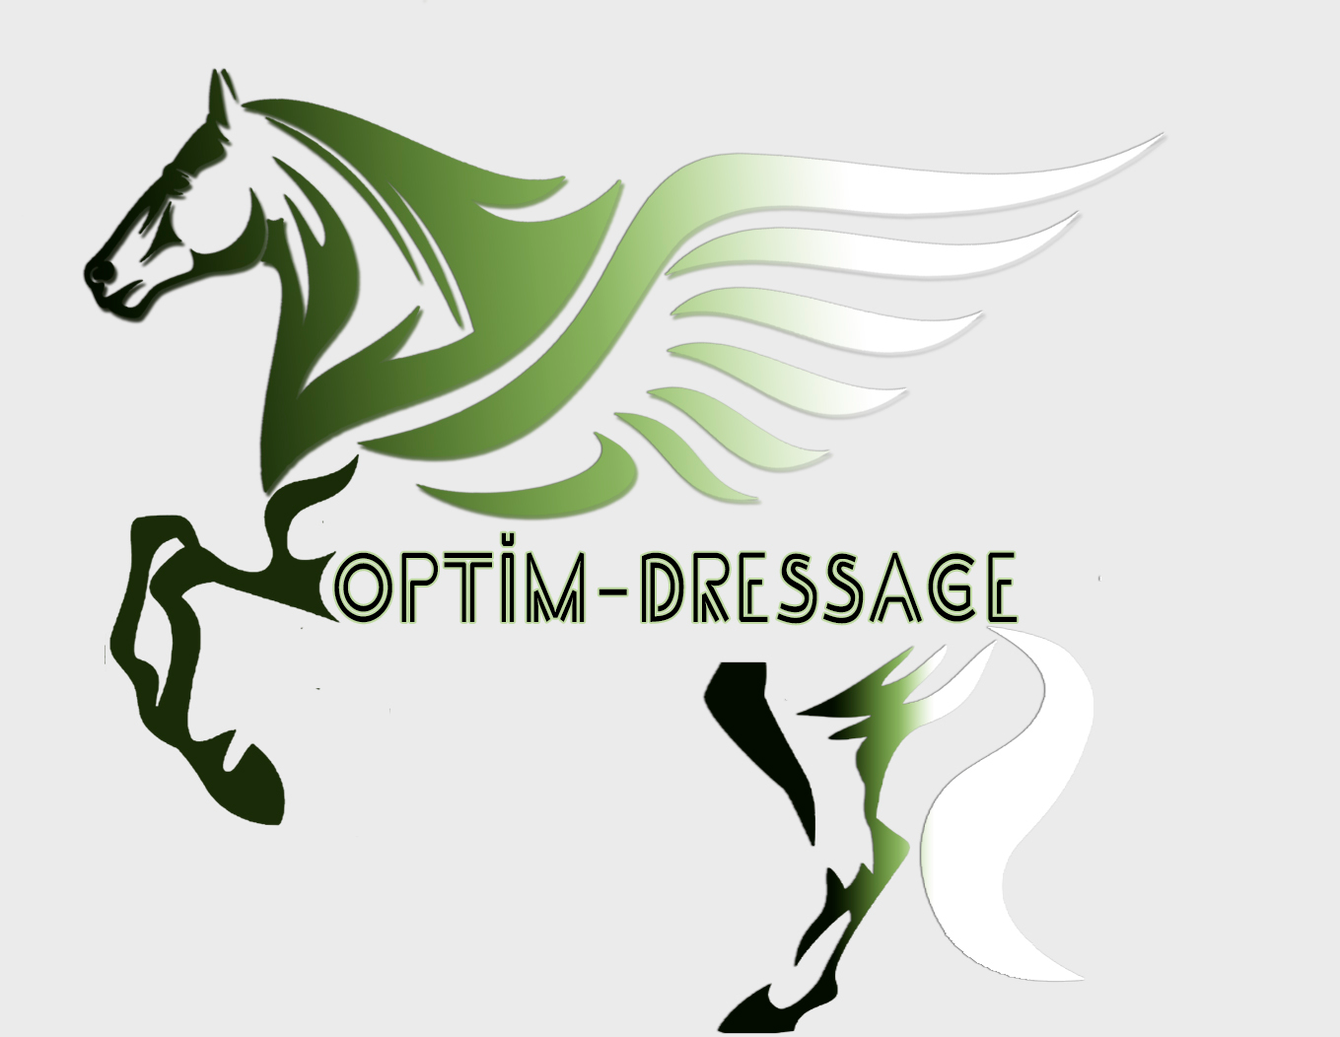 optim dressage